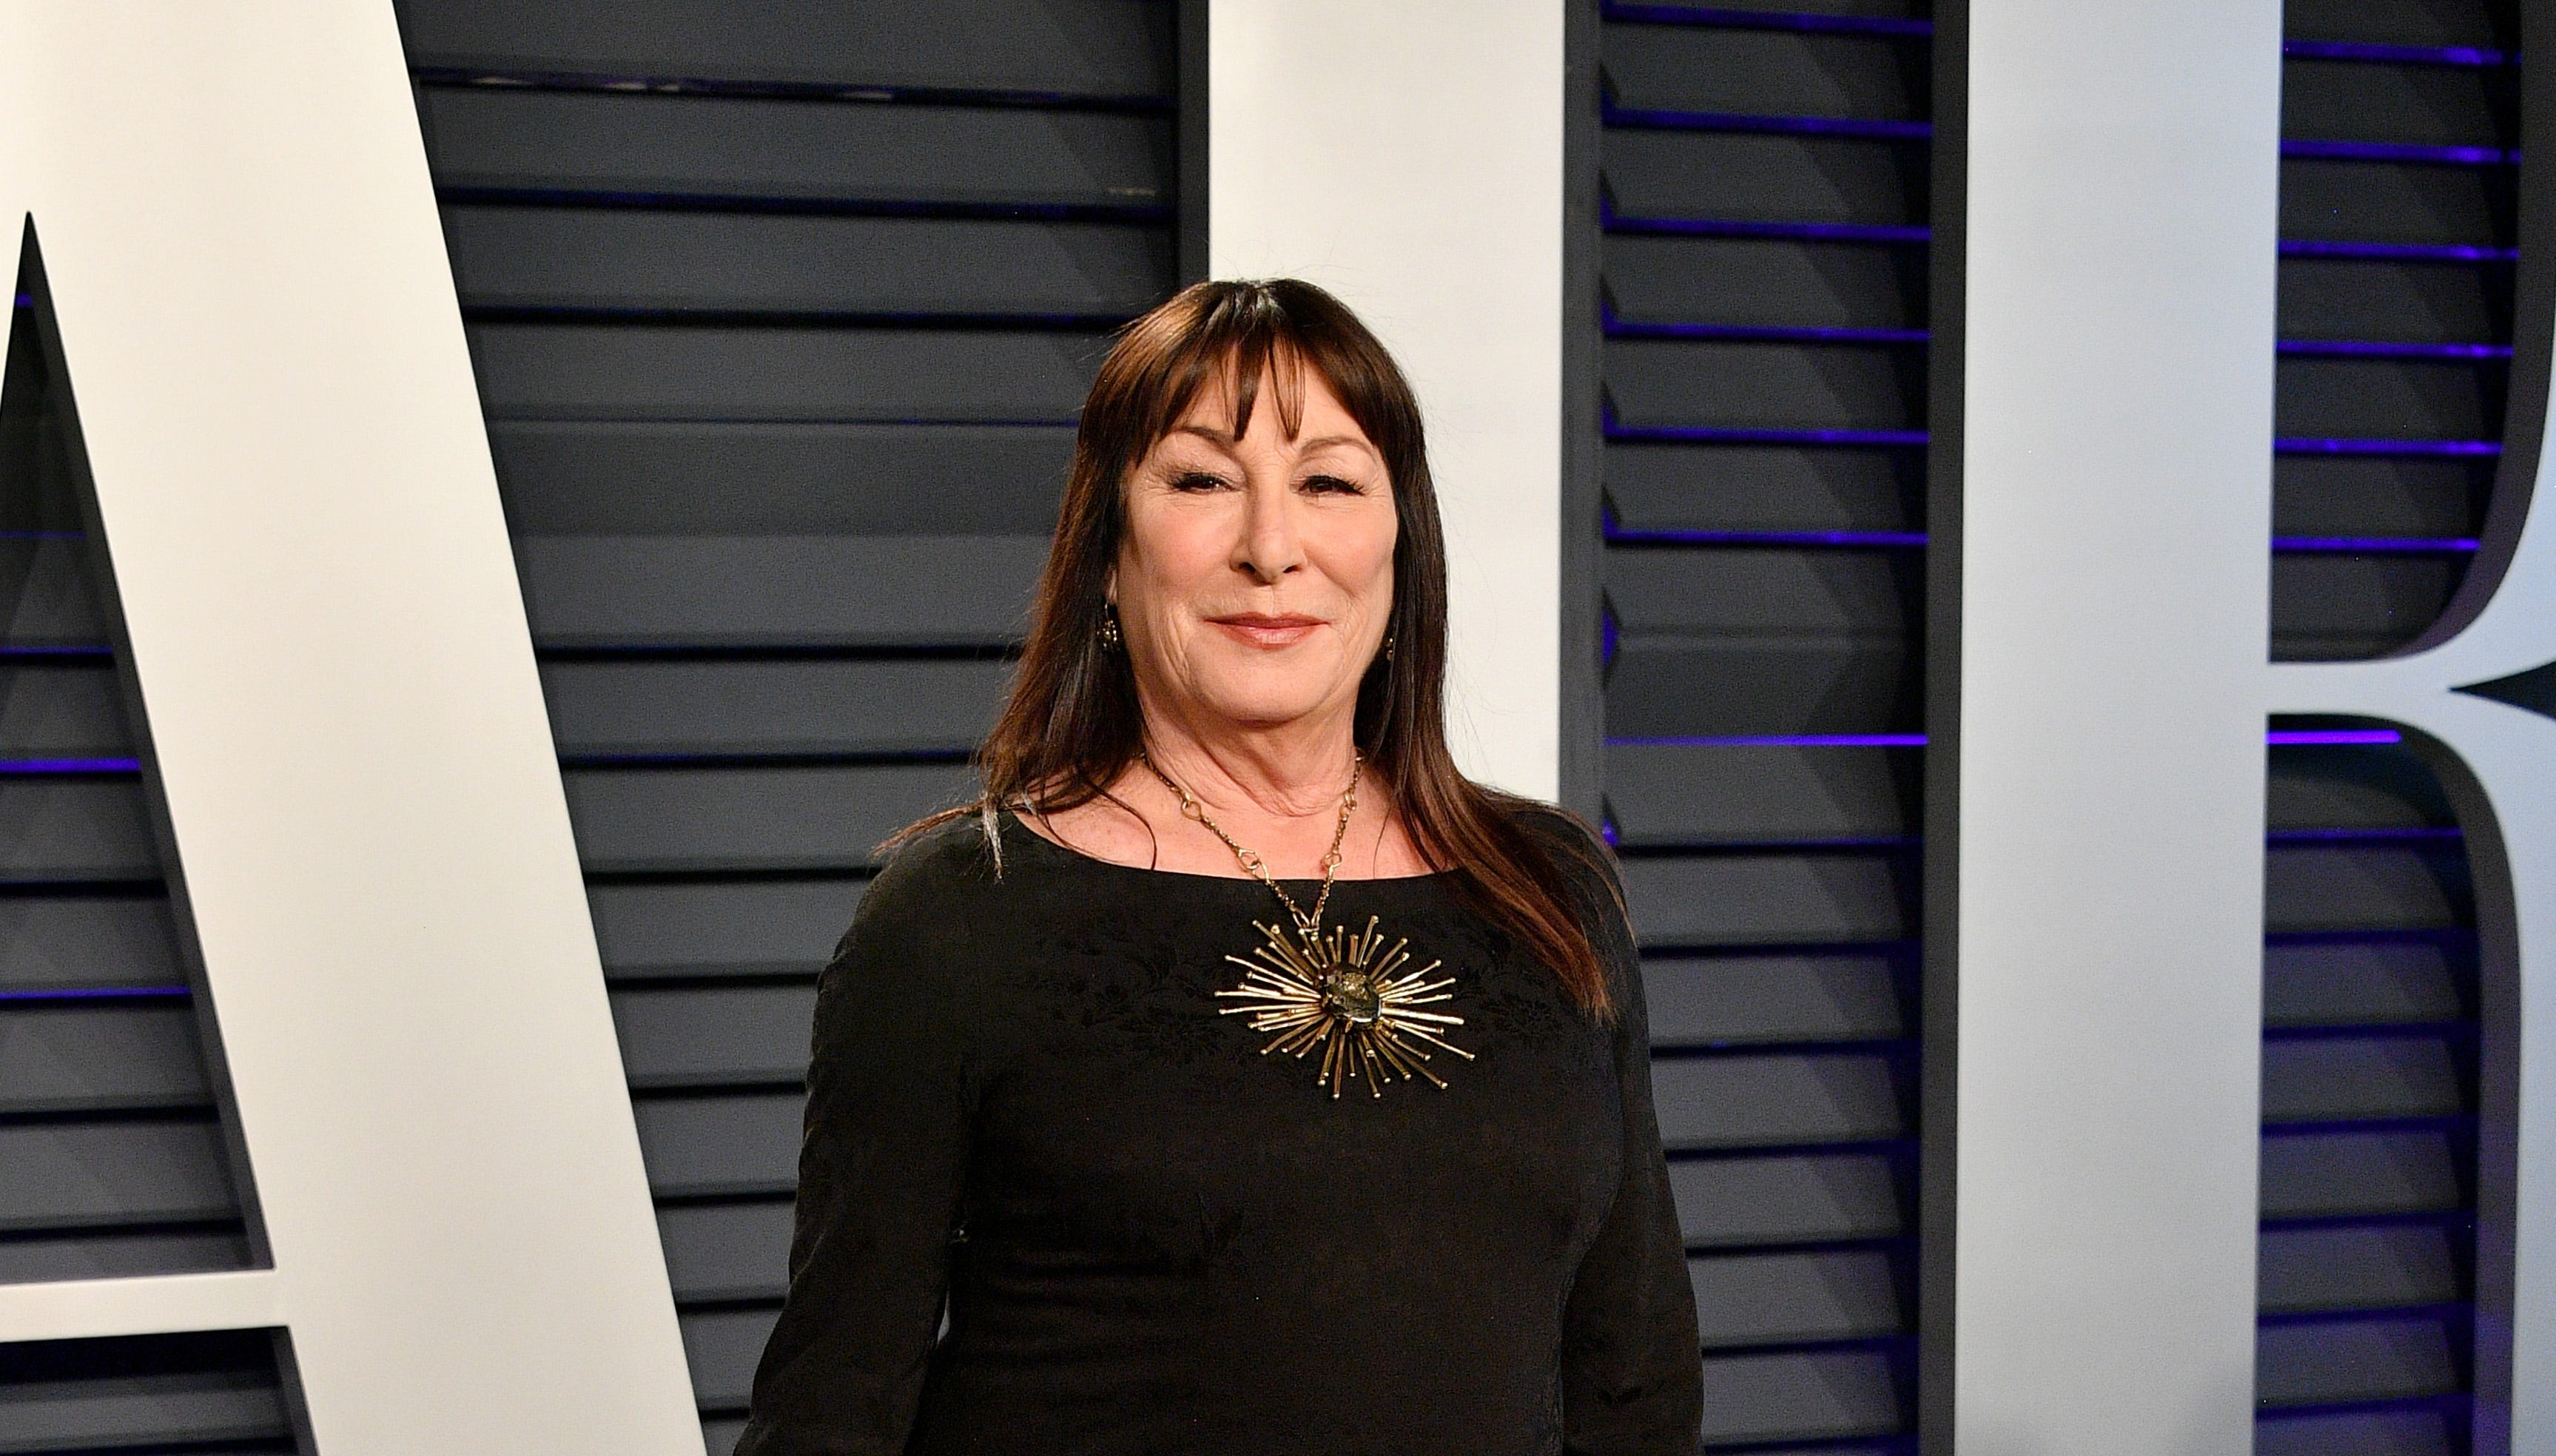 The 6 Craziest Quotes From That Anjelica Huston Interview From Drug Use To Her Oprah Beef